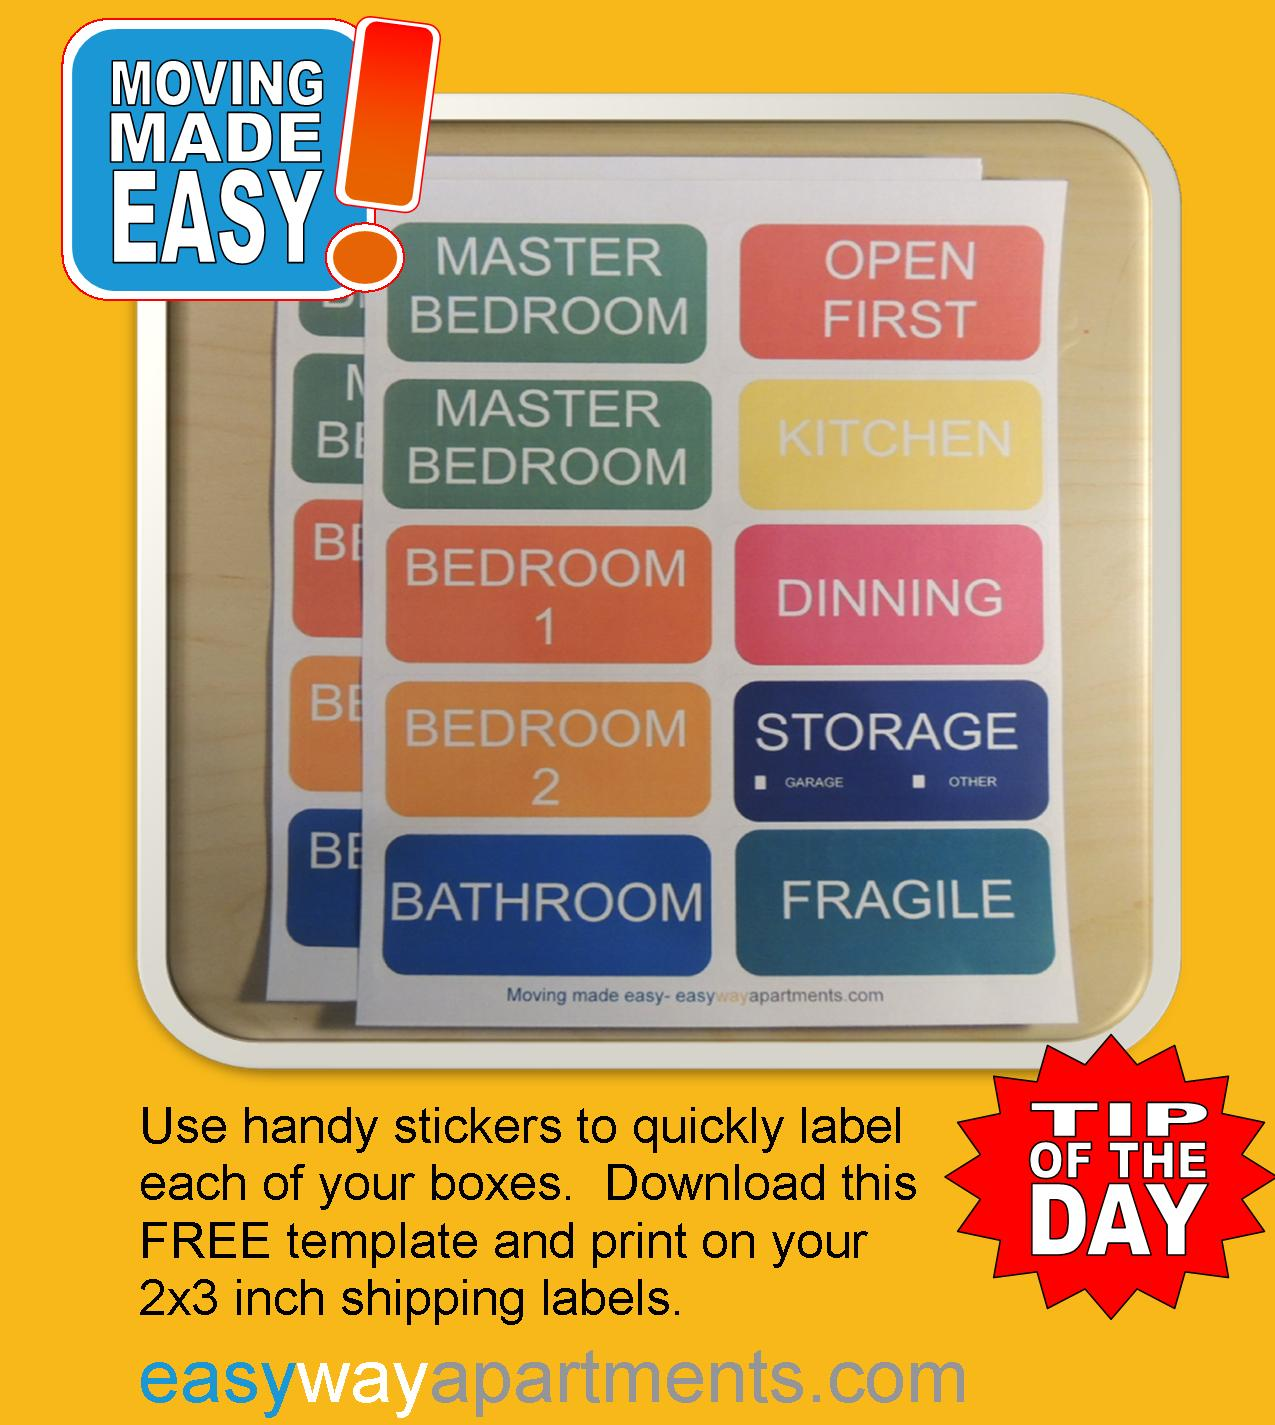 Free Stickers to Make Labeling Your Moving Boxes Quick and Easy